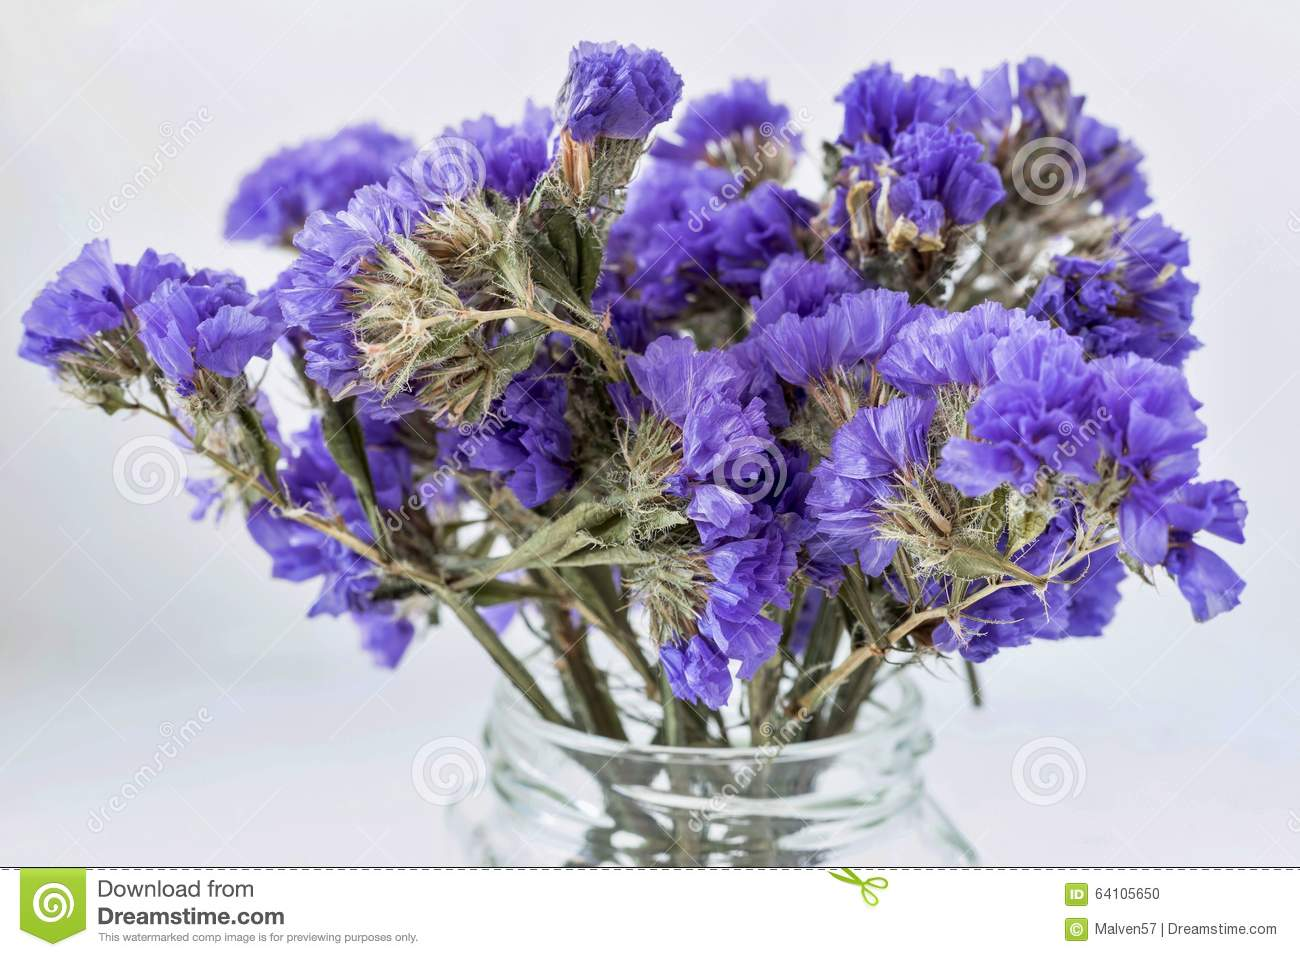 Dry Bouquet From Abstract Small Blue Flowers Stock Photo - Image of ...